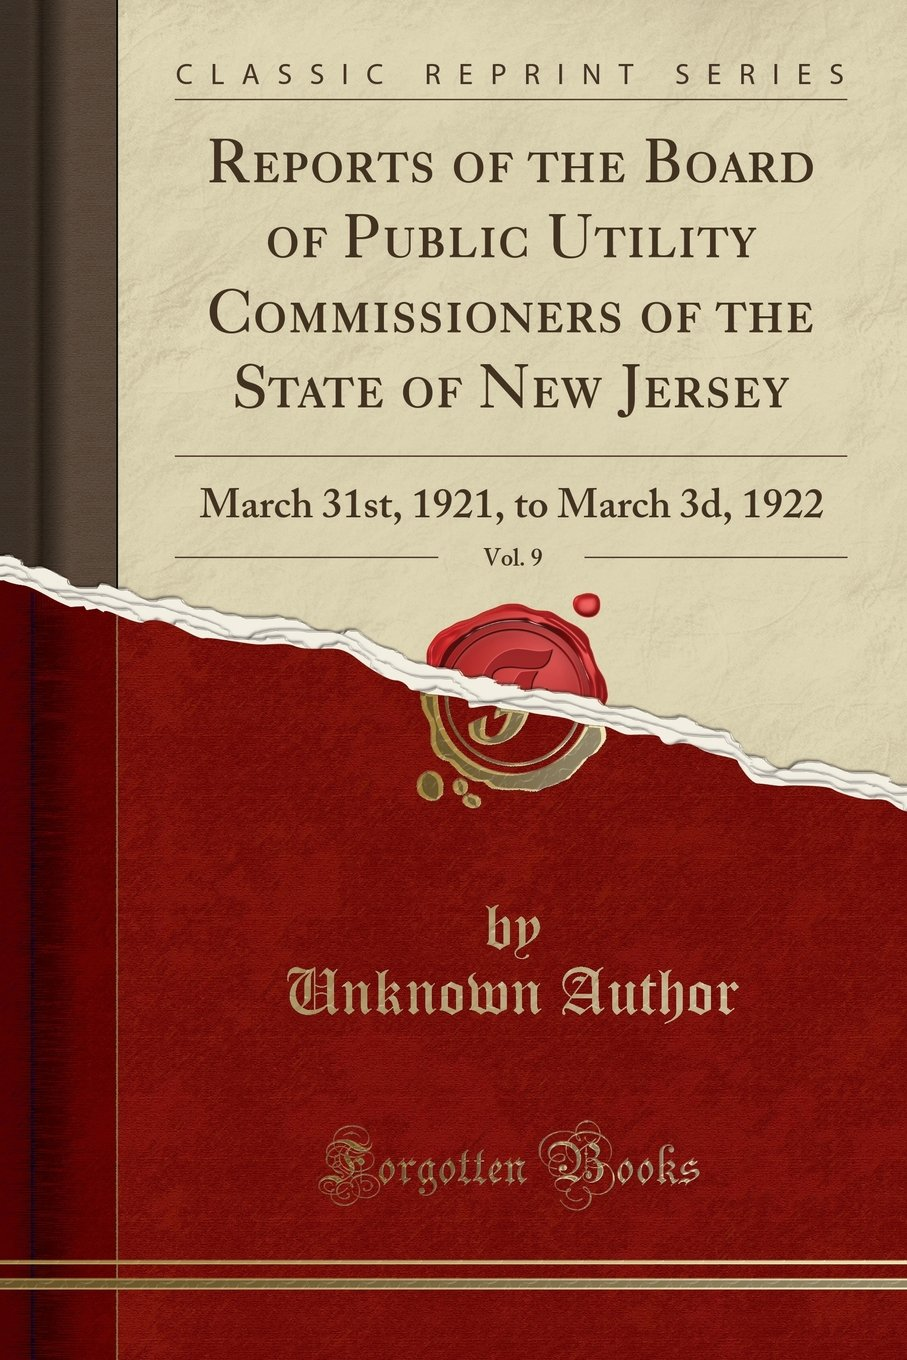 Download Reports of the Board of Public Utility Commissioners of the State of New Jersey, Vol. 9: March 31st, 1921, to March 3d, 1922 (Classic Reprint) ebook